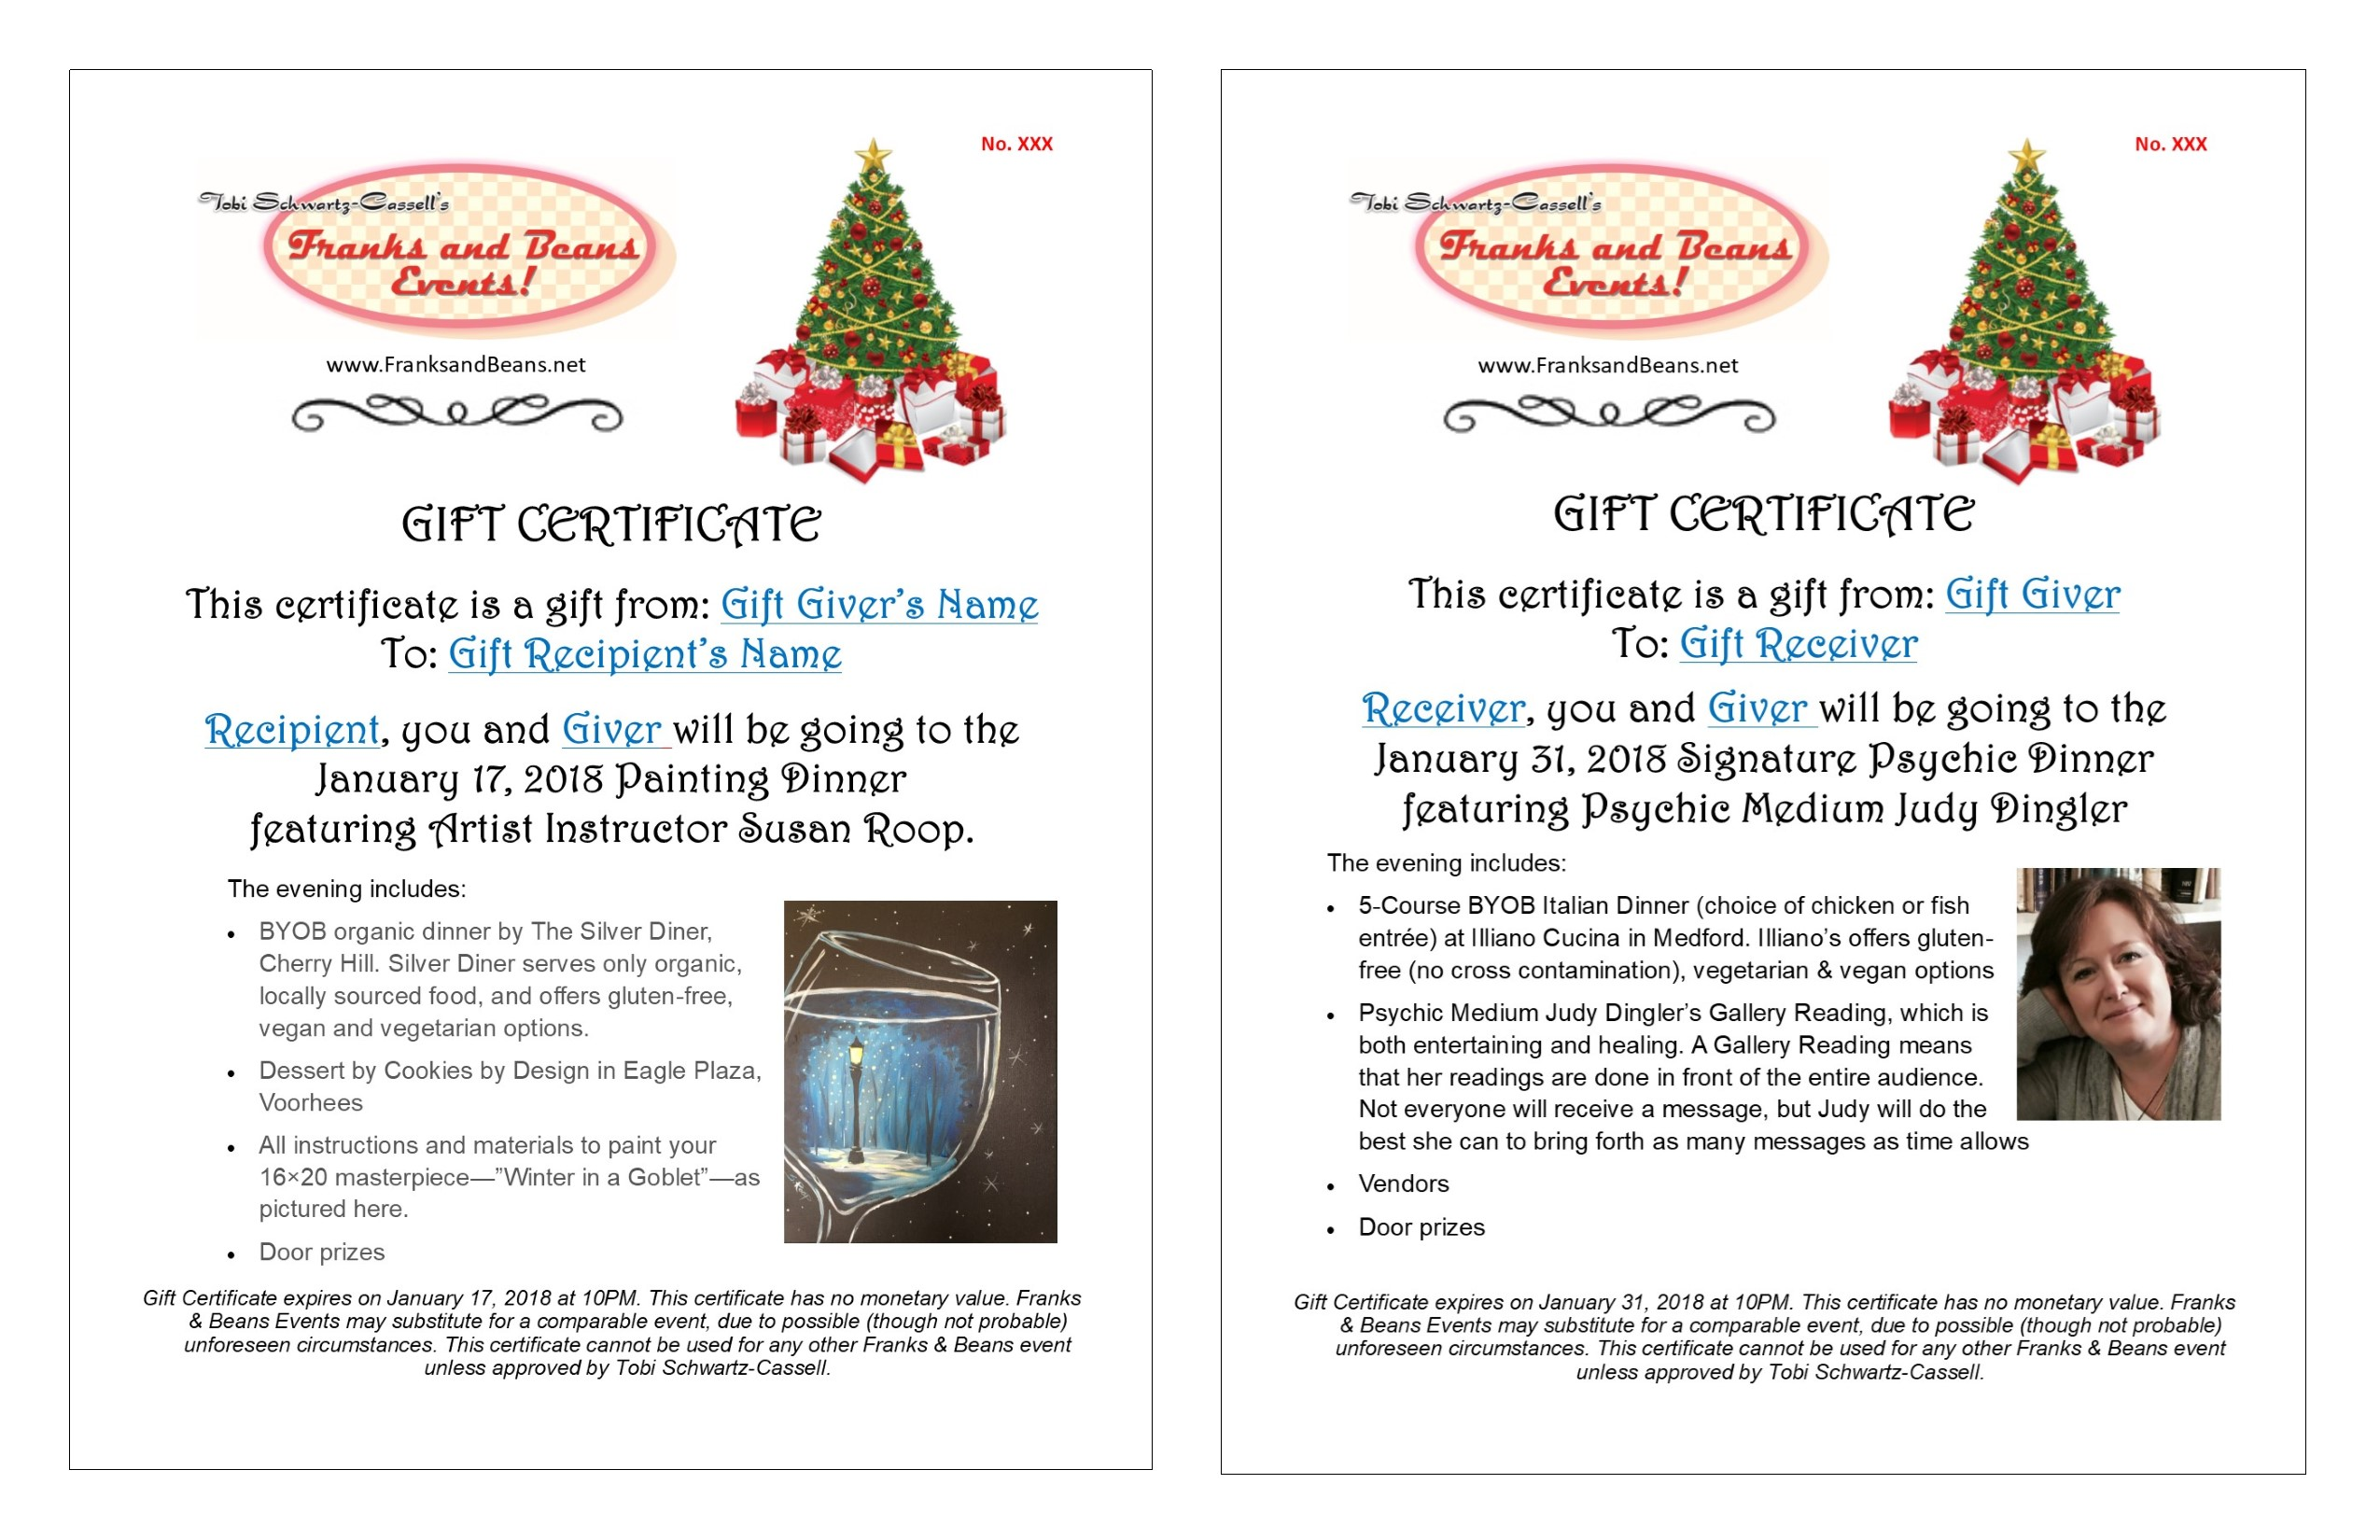 Gift her a gift certificate to our Painting Dinner or Signature Psychic Dinner